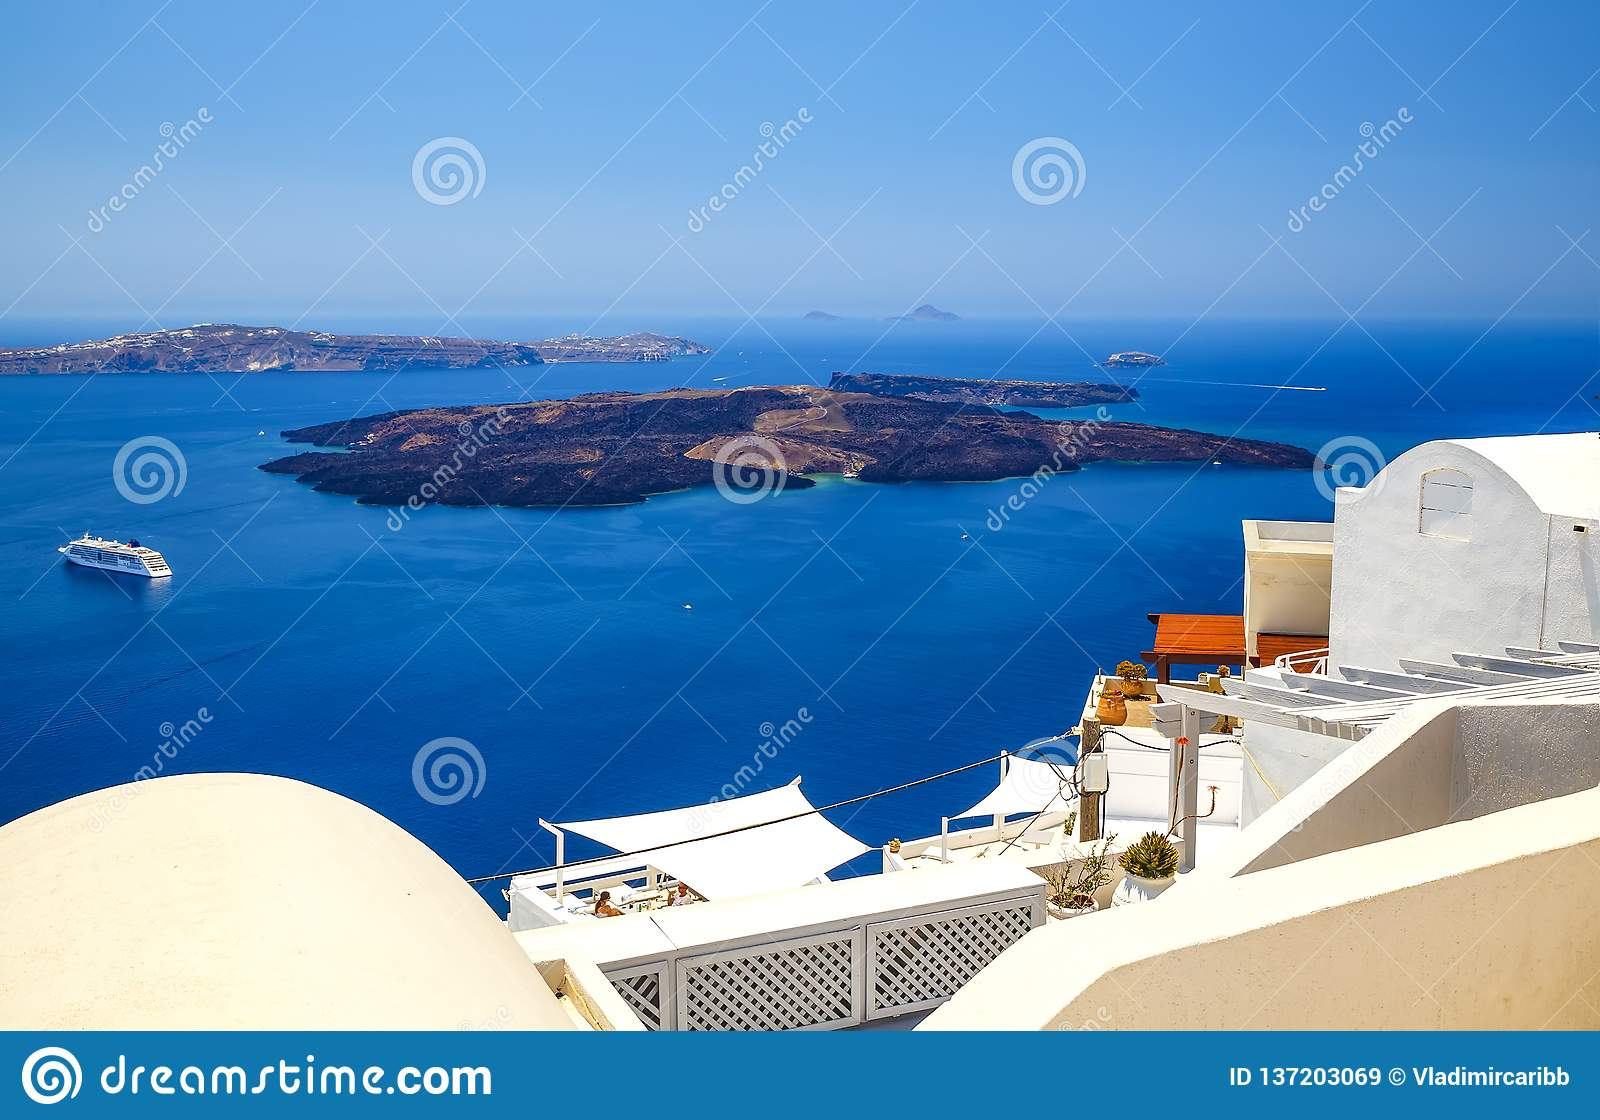 Oia town on Santorini island, Greece. Traditional and famous houses and churches with blue domes over Caldera, Aegean sea color